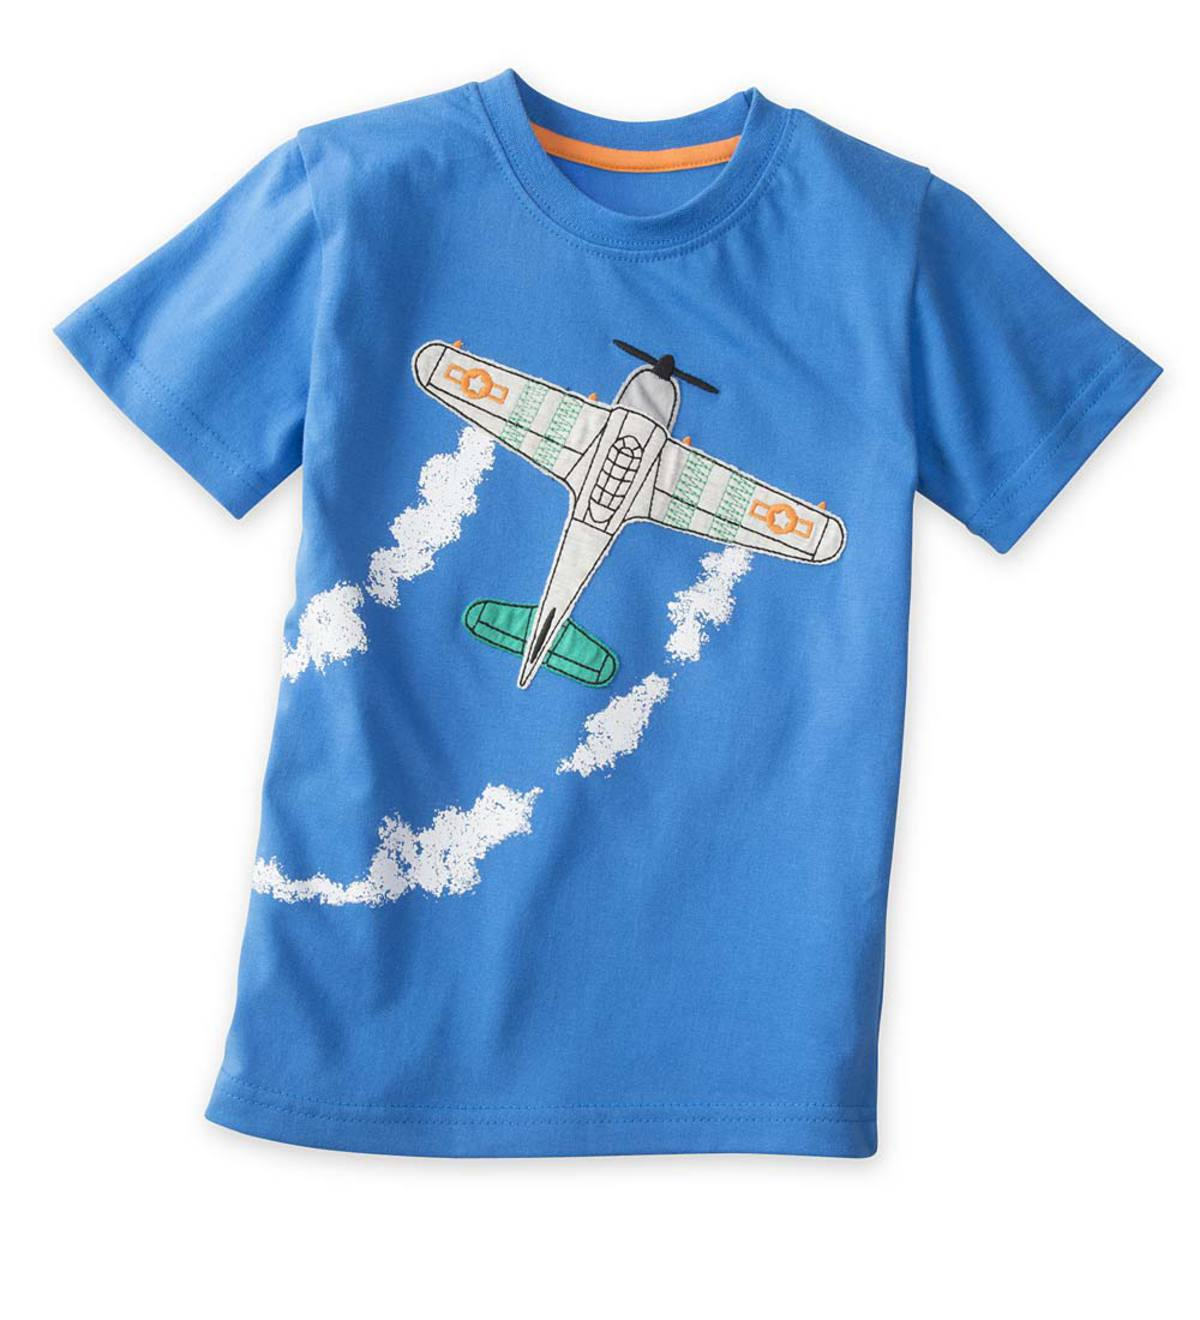 Short Sleeve Airplane Graphic Tee - Blue - 5/6